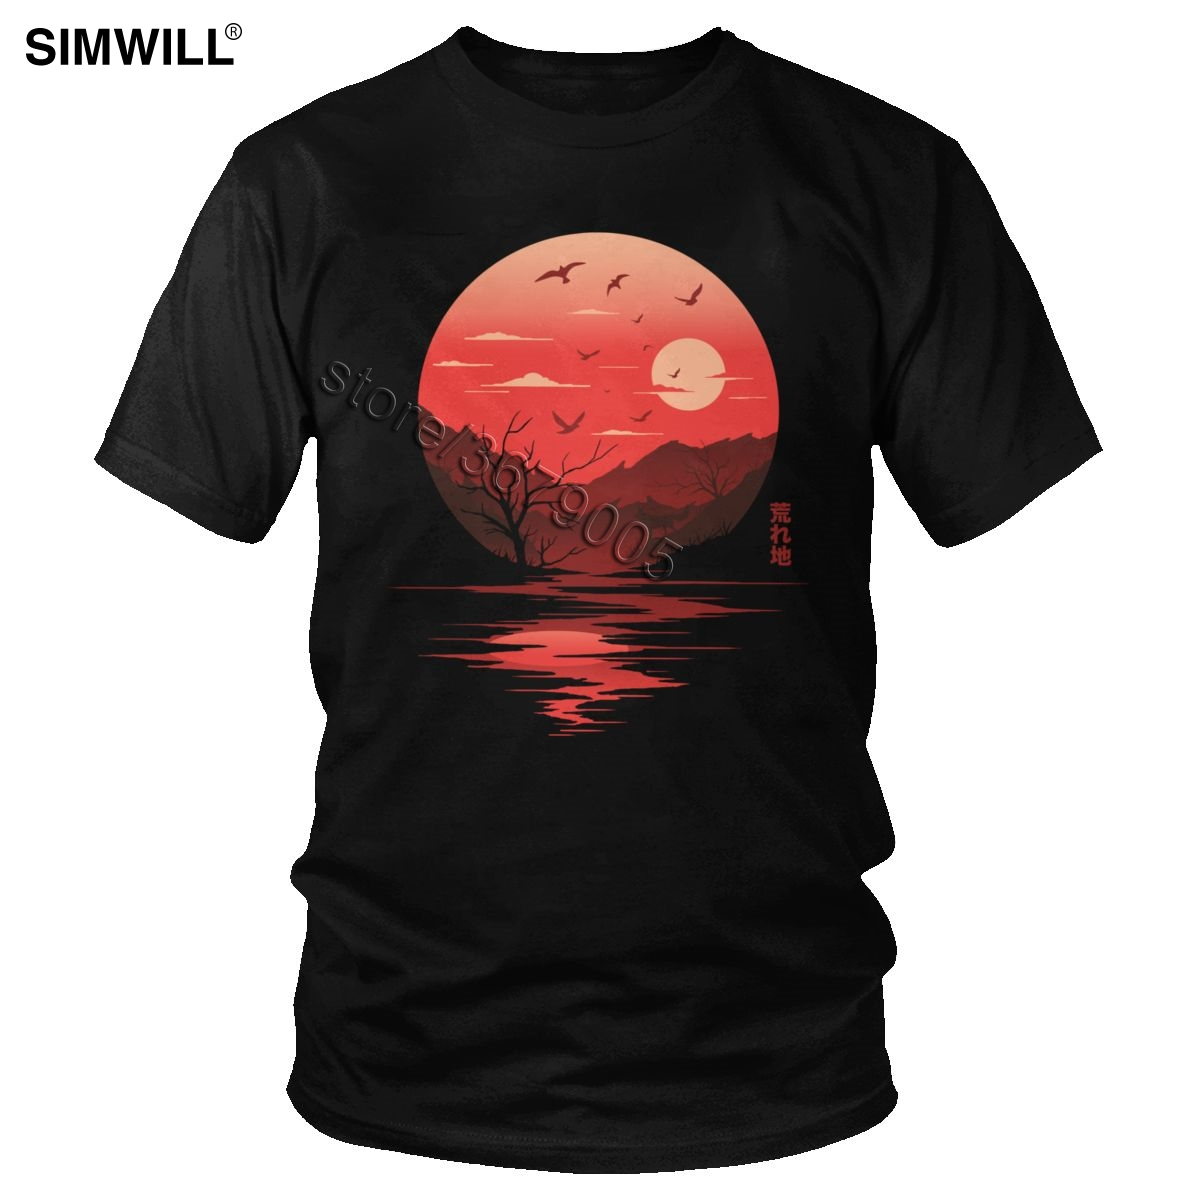 Trendy New Arrival <font><b>T</b></font>-<font><b>Shirt</b></font> Men Cotton <font><b>Wilderness</b></font> Mountain Tee Short Sleeve Summer Sunrise Casual <font><b>T</b></font> <font><b>Shirt</b></font> Streetwear Clothing image